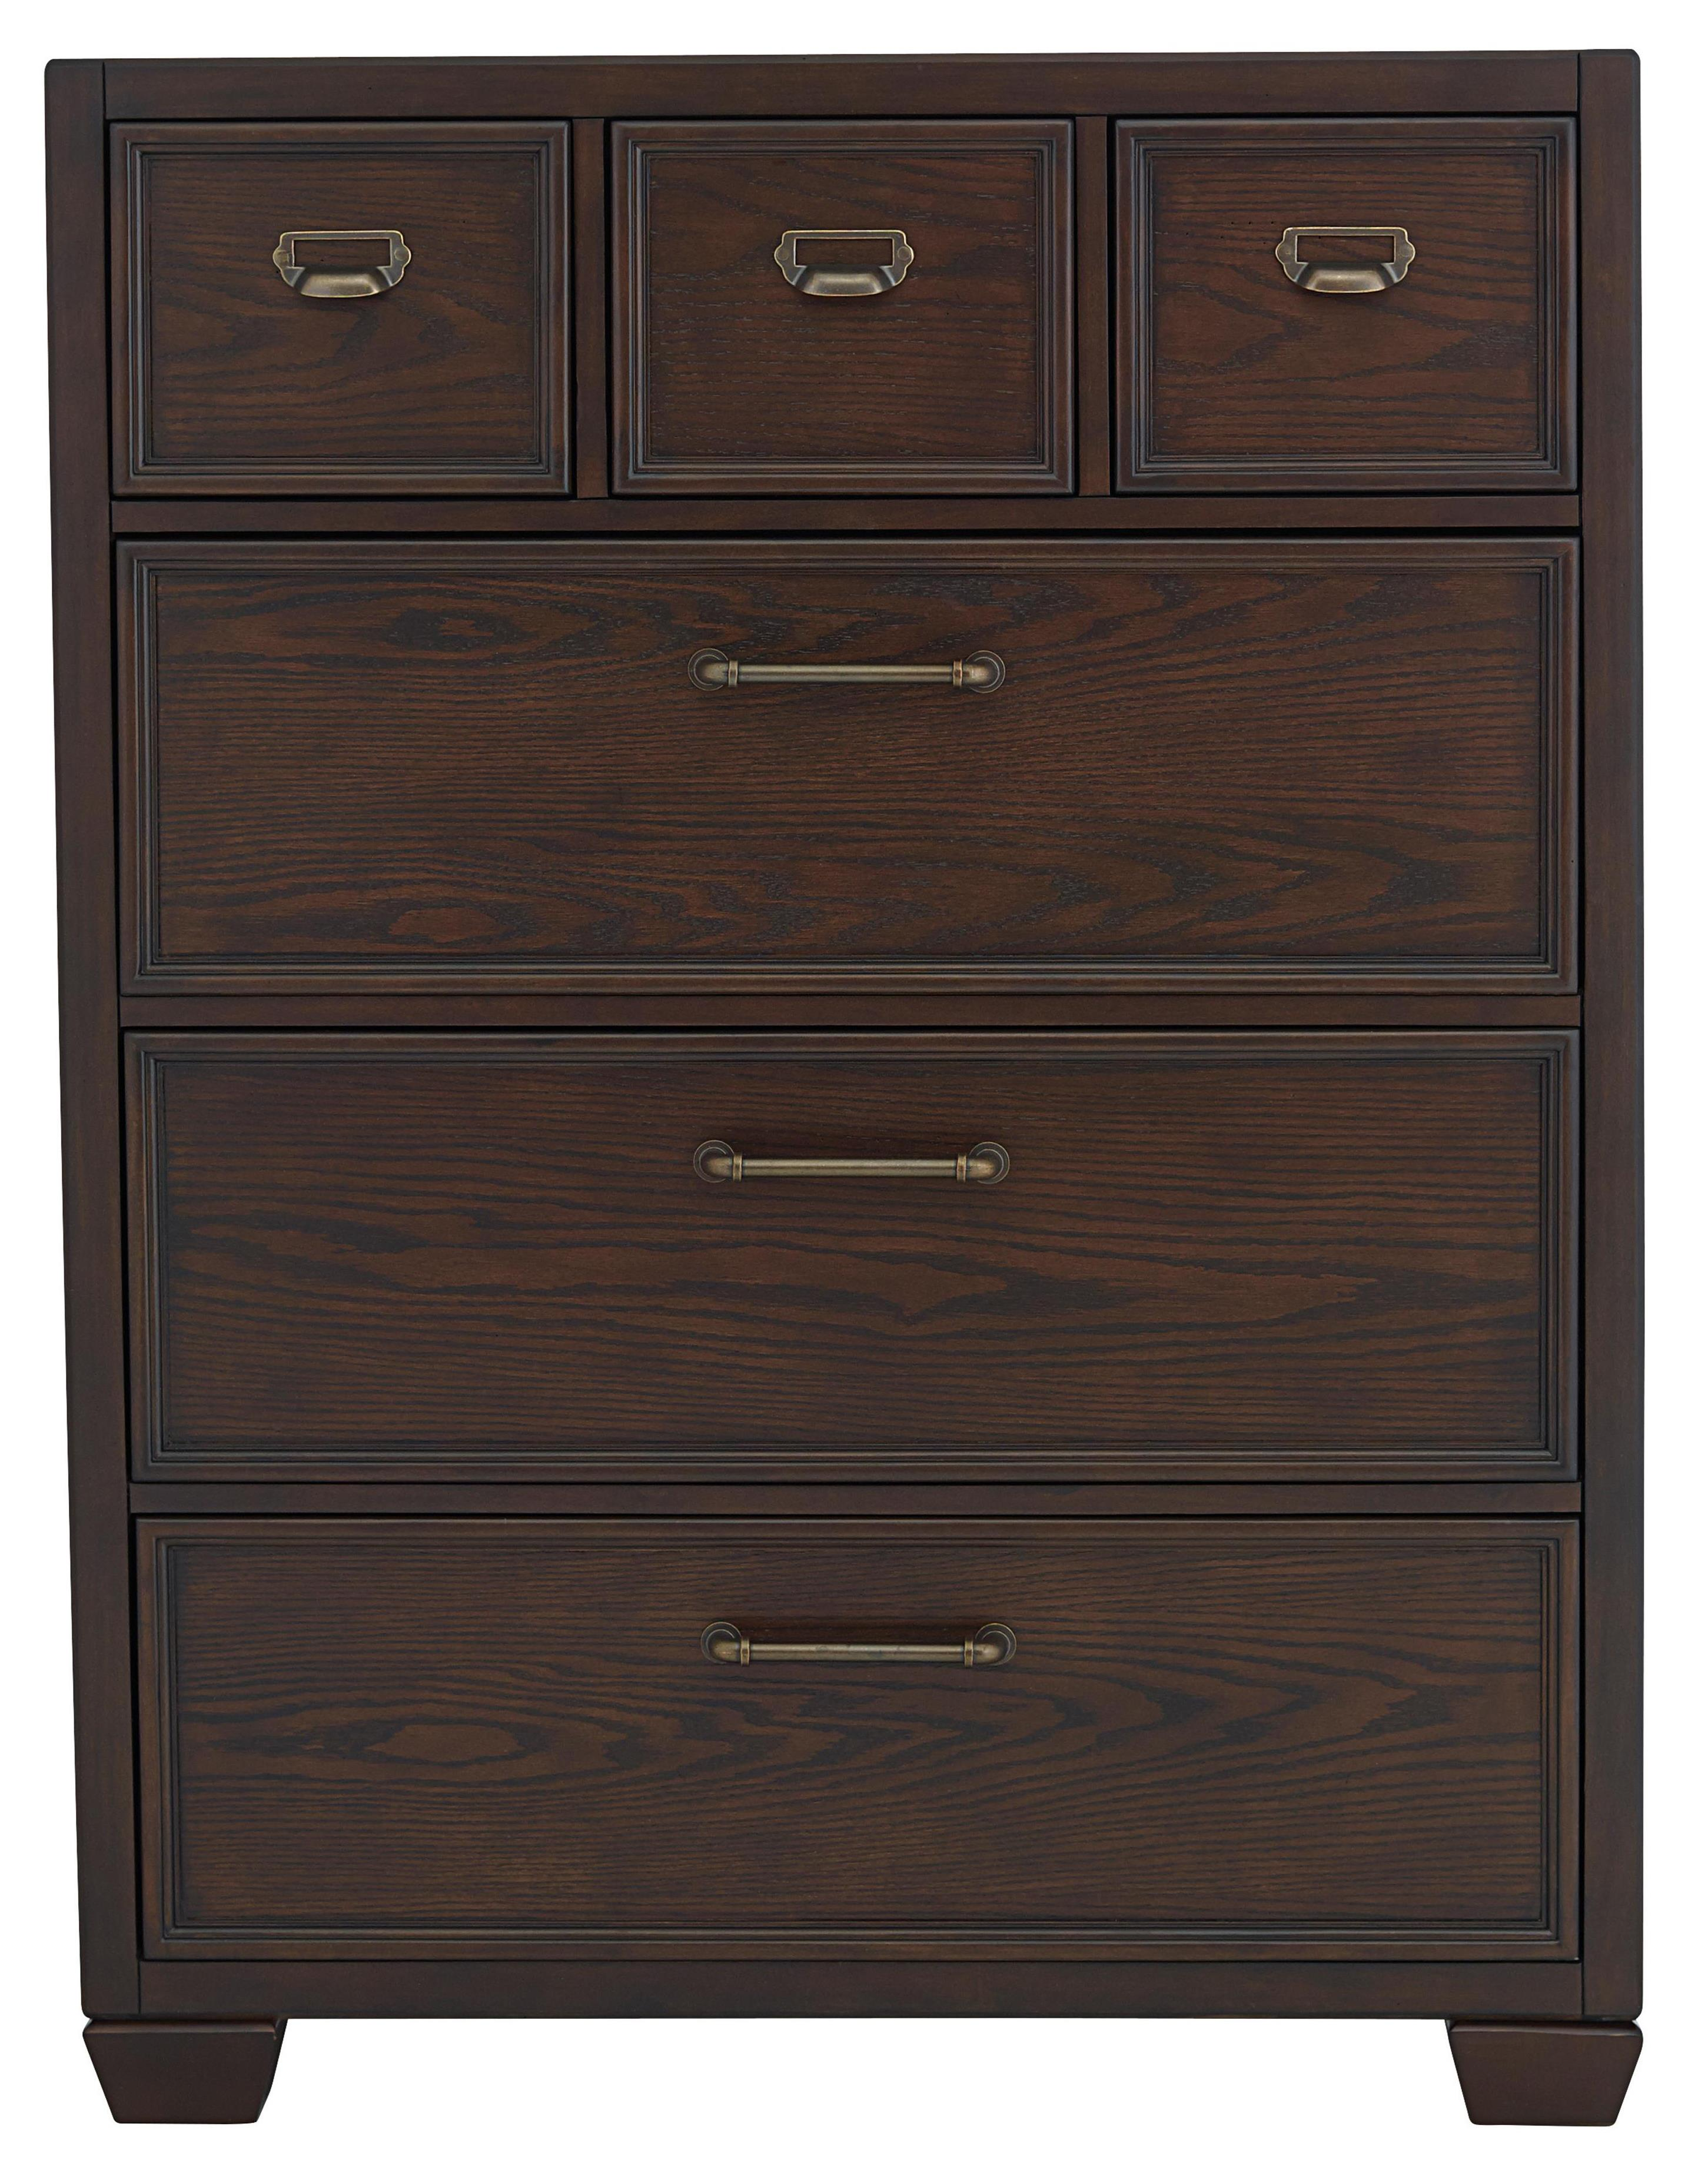 Kidz Gear Mason Chest of Drawers - Item Number: 8872-440